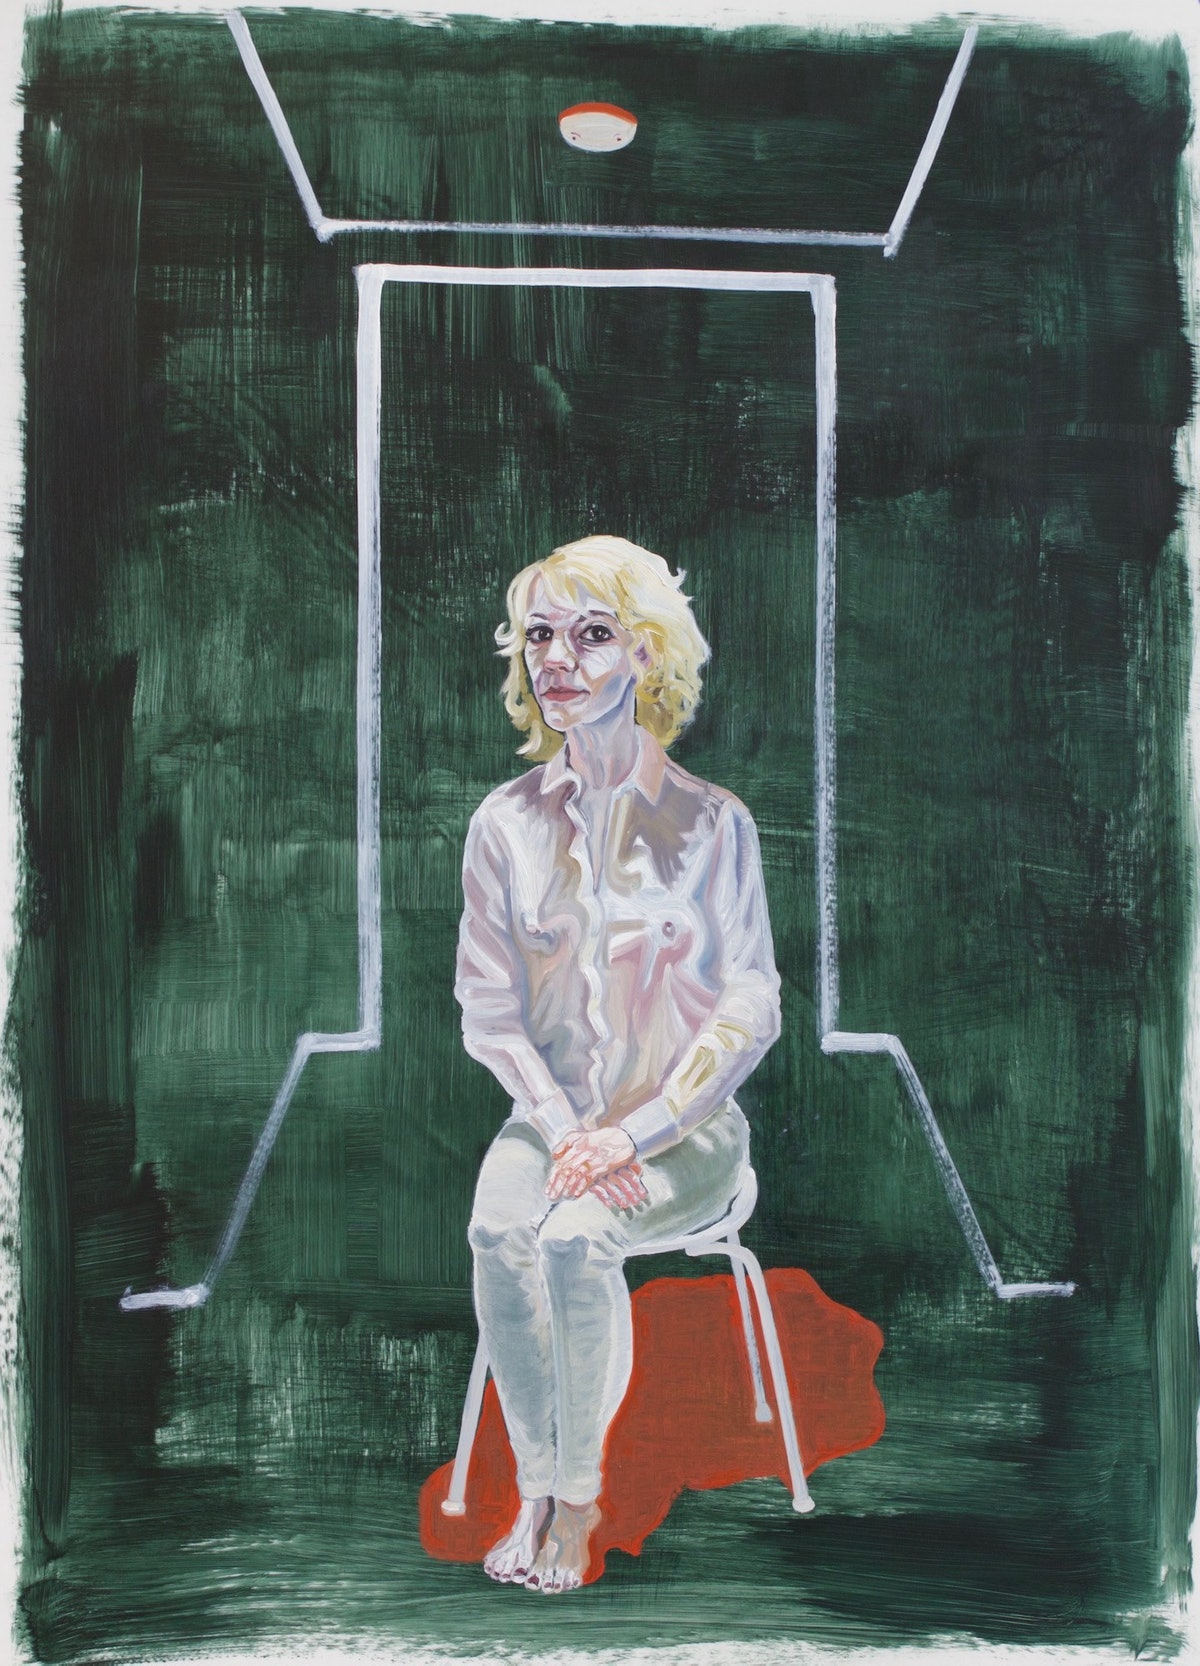 **Patty Horing - Self Portrait as a White Woman - THE UNTITLED SPACE - UPRISE _ ANGRY WOMEN EXHIBIT.jpg